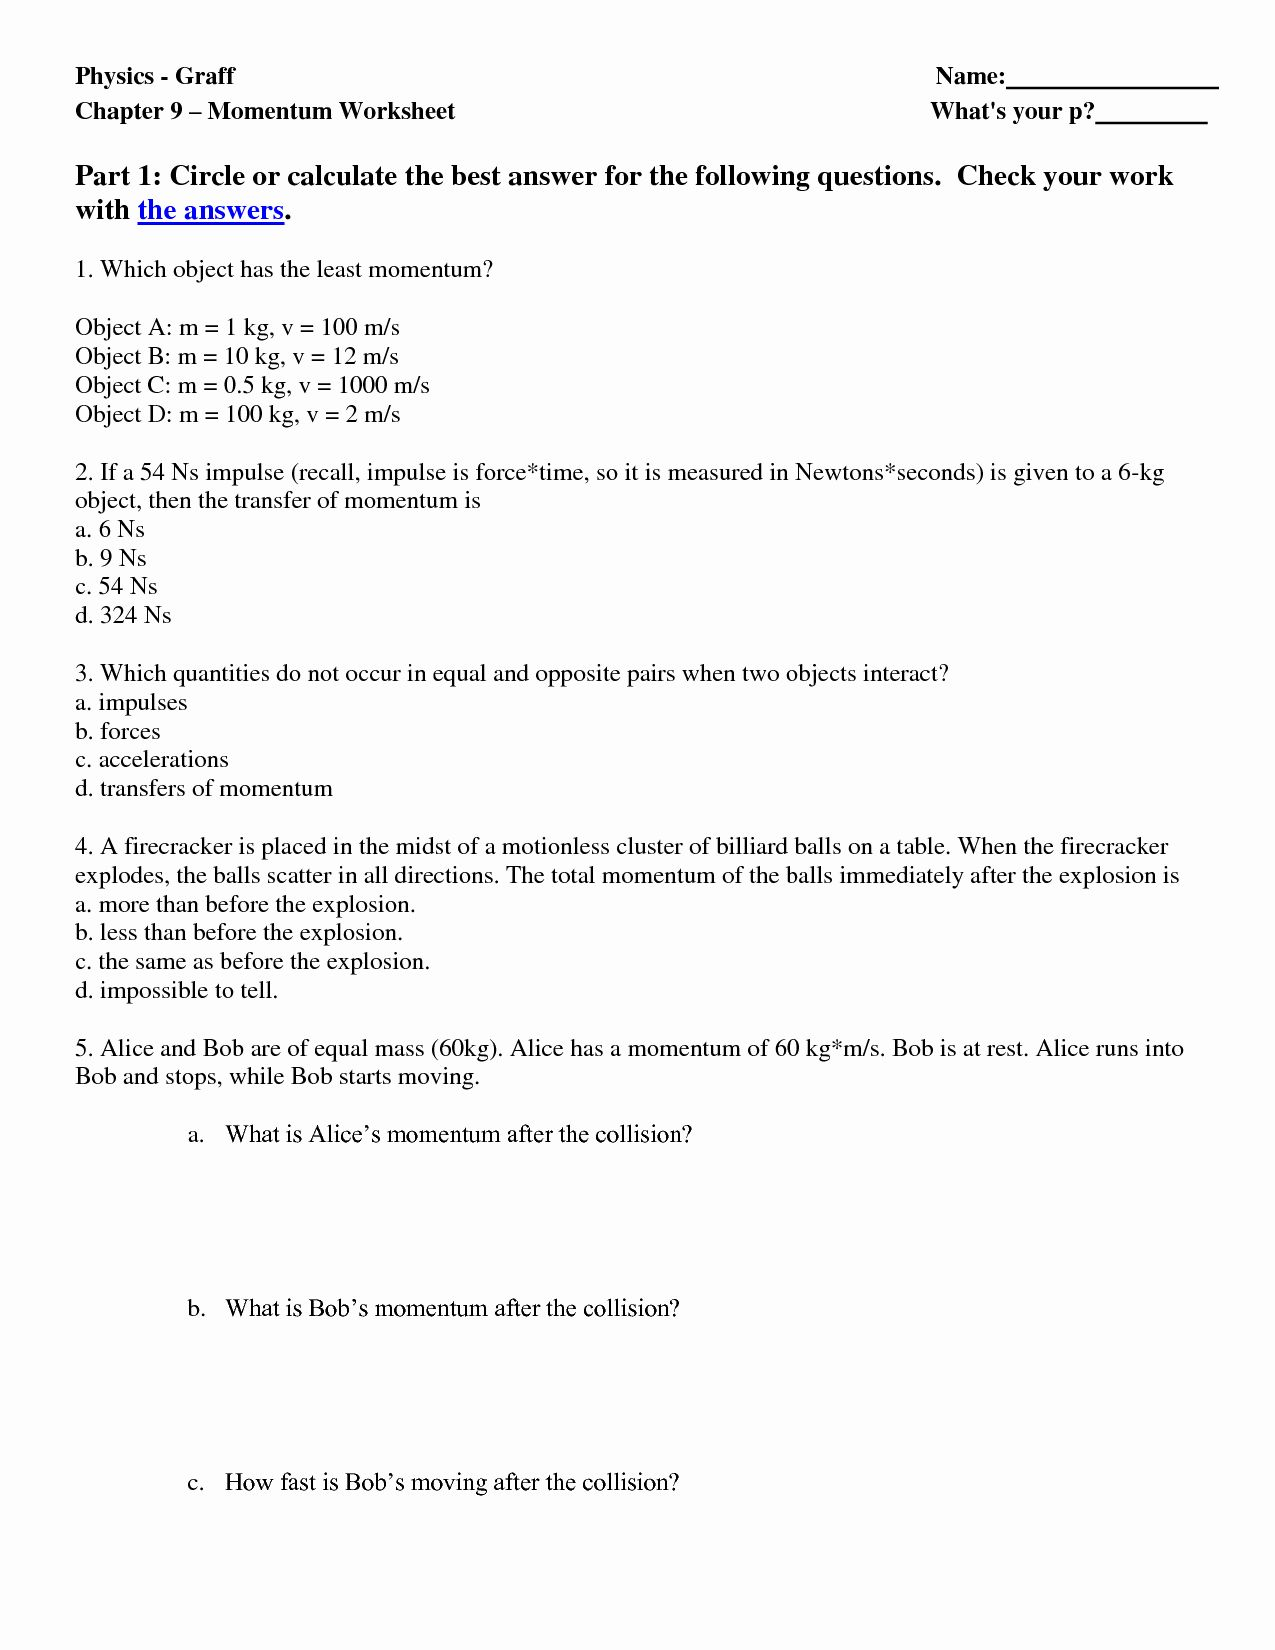 50 Energy Transformation Worksheet Middle School In